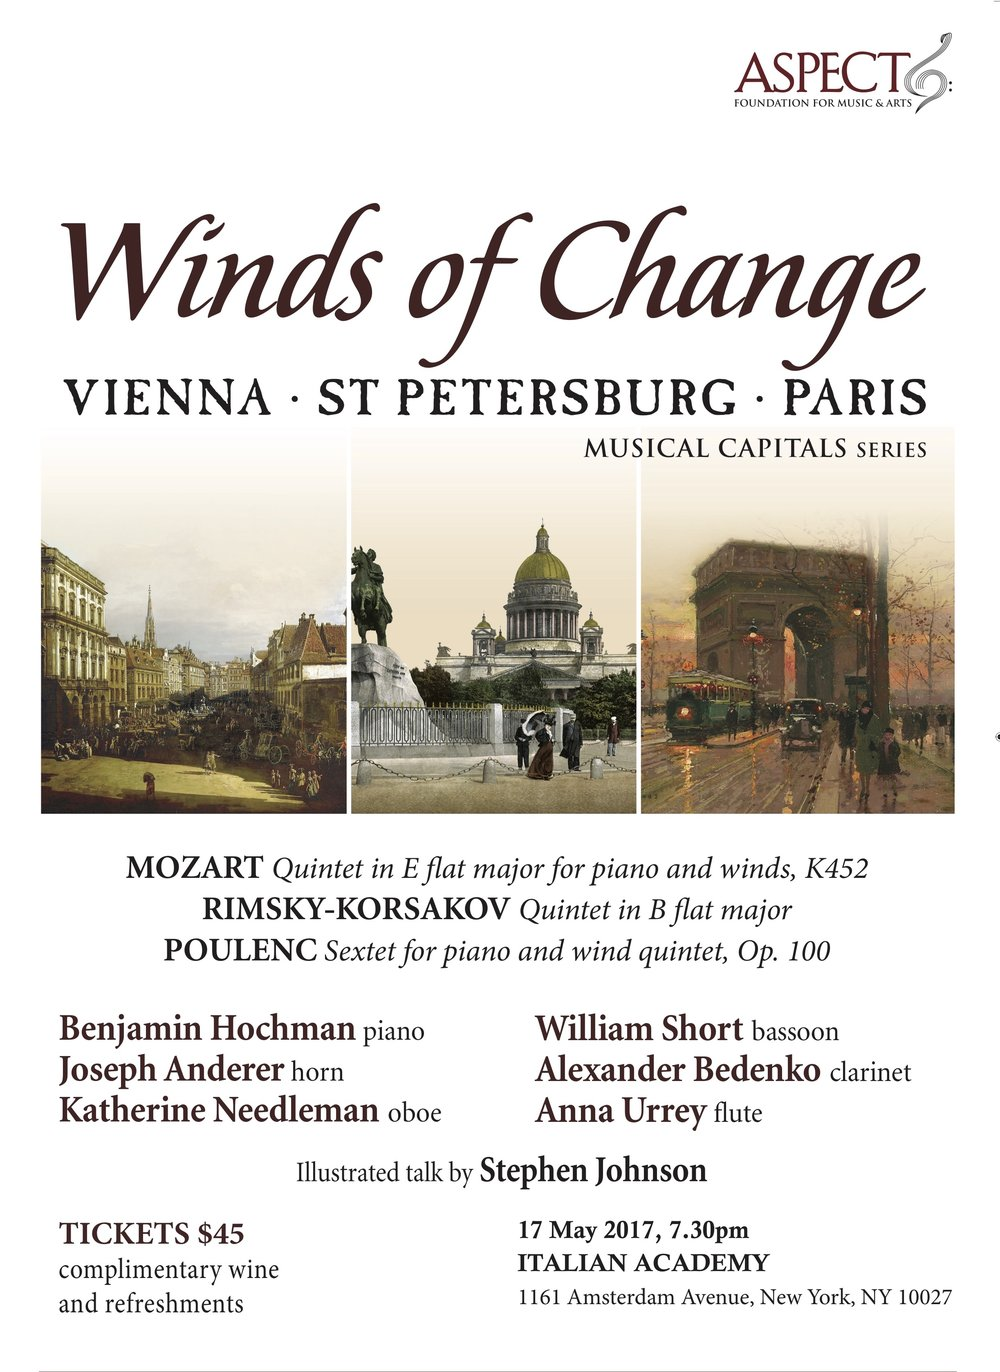 Winds of Change 16x24 poster DM.jpg